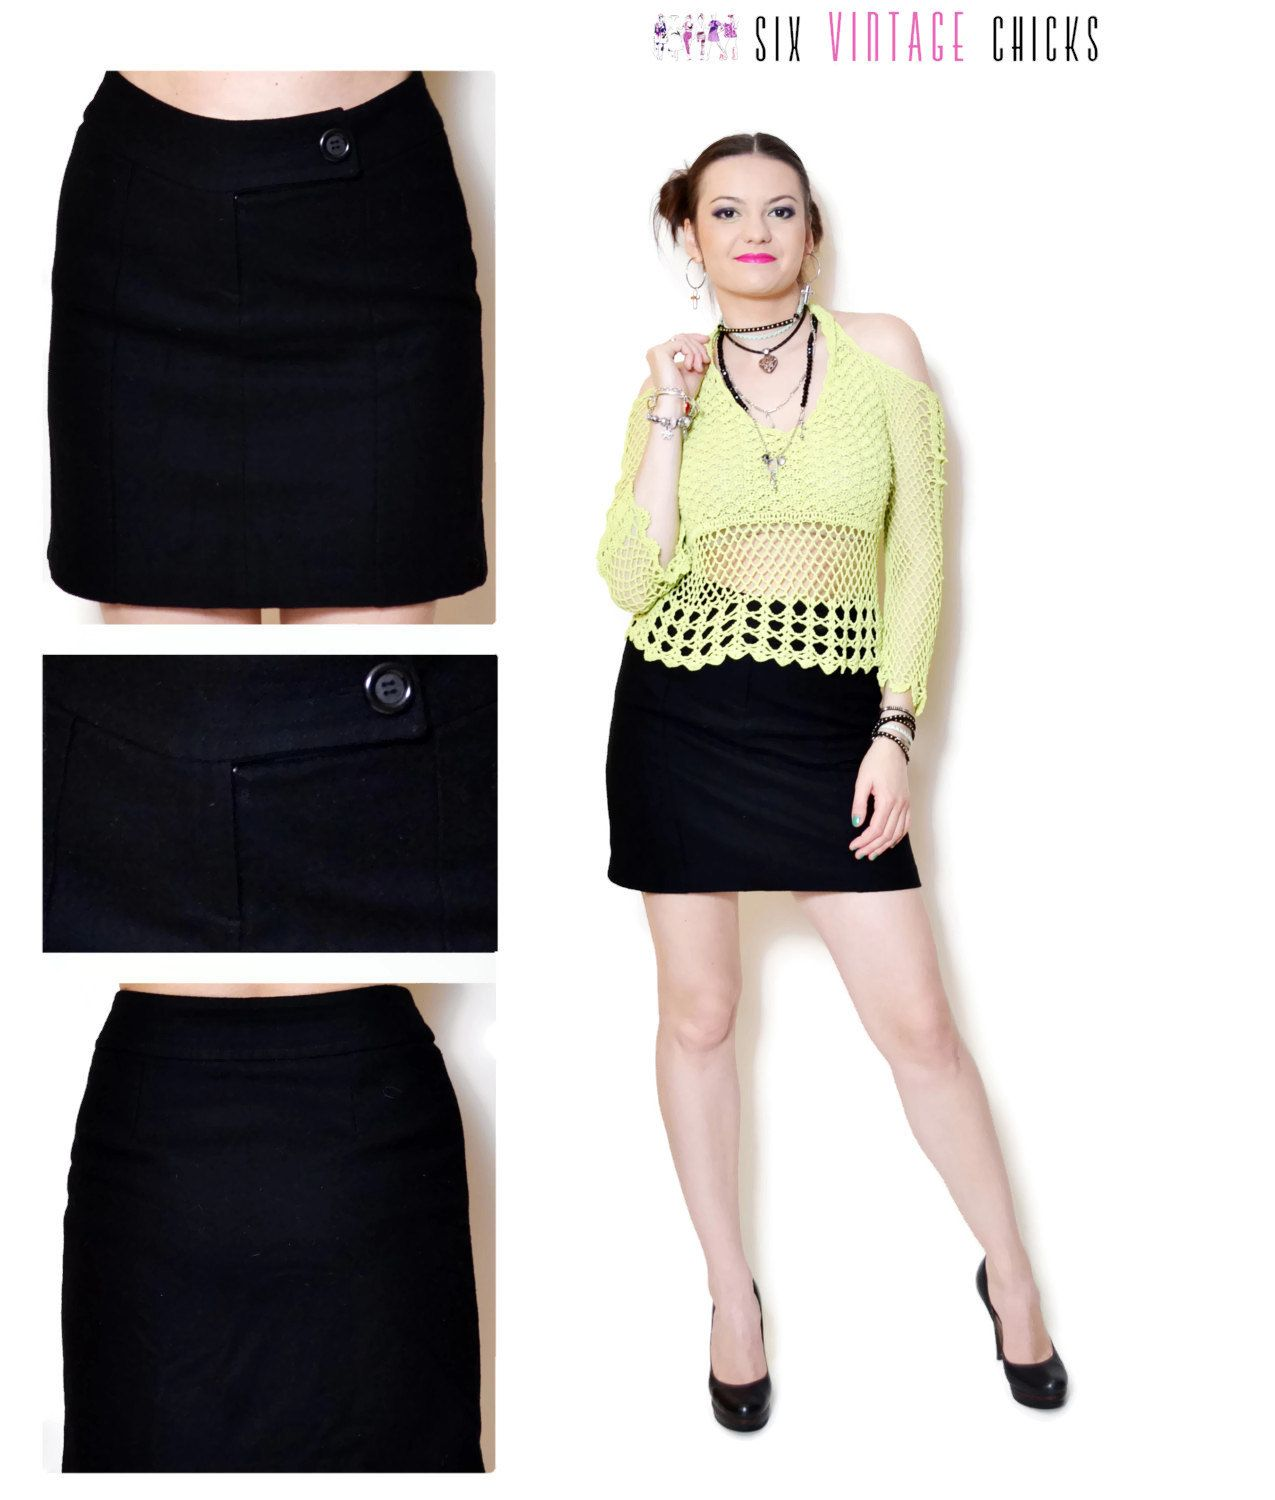 9e391acbc4 Wool Skirt Vintage high waisted skirt mini skirt women clothing office  clothes black 90s clothing vintage Minimalist rocker sexy gifts S by  SixVintageChicks ...